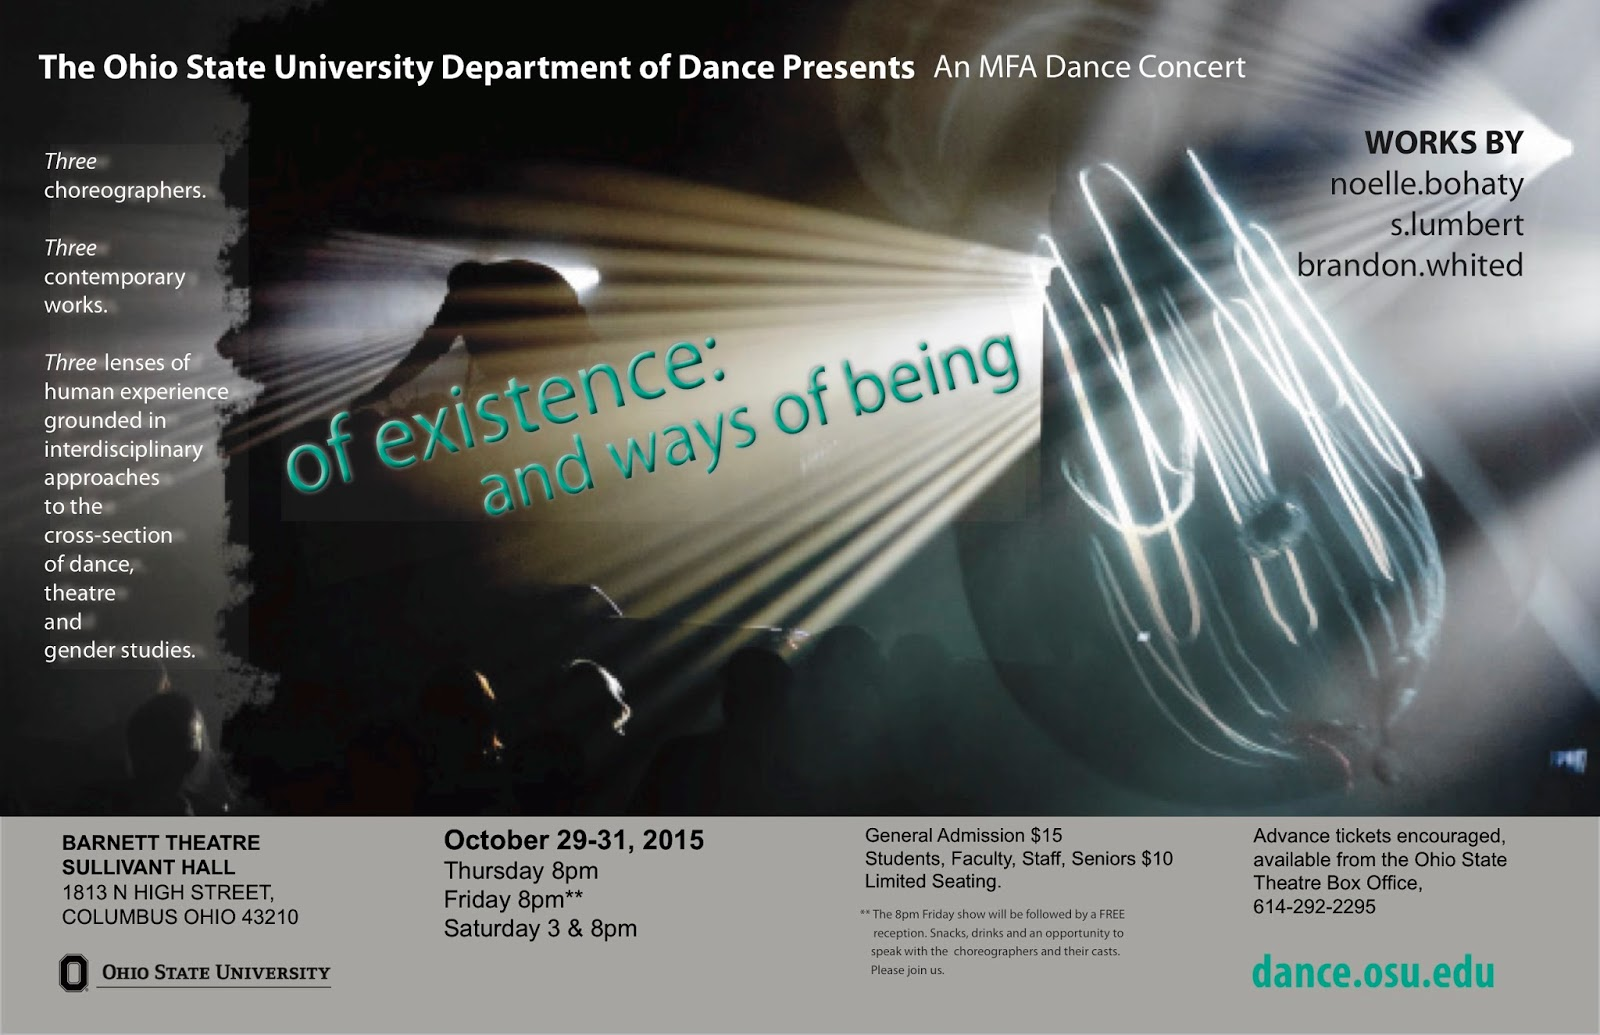 the ohio state university department of dance on blogger mfa concert of existence and ways of being features works from 3rd year mfa grads noelle bohaty s lumbert and brandon whited